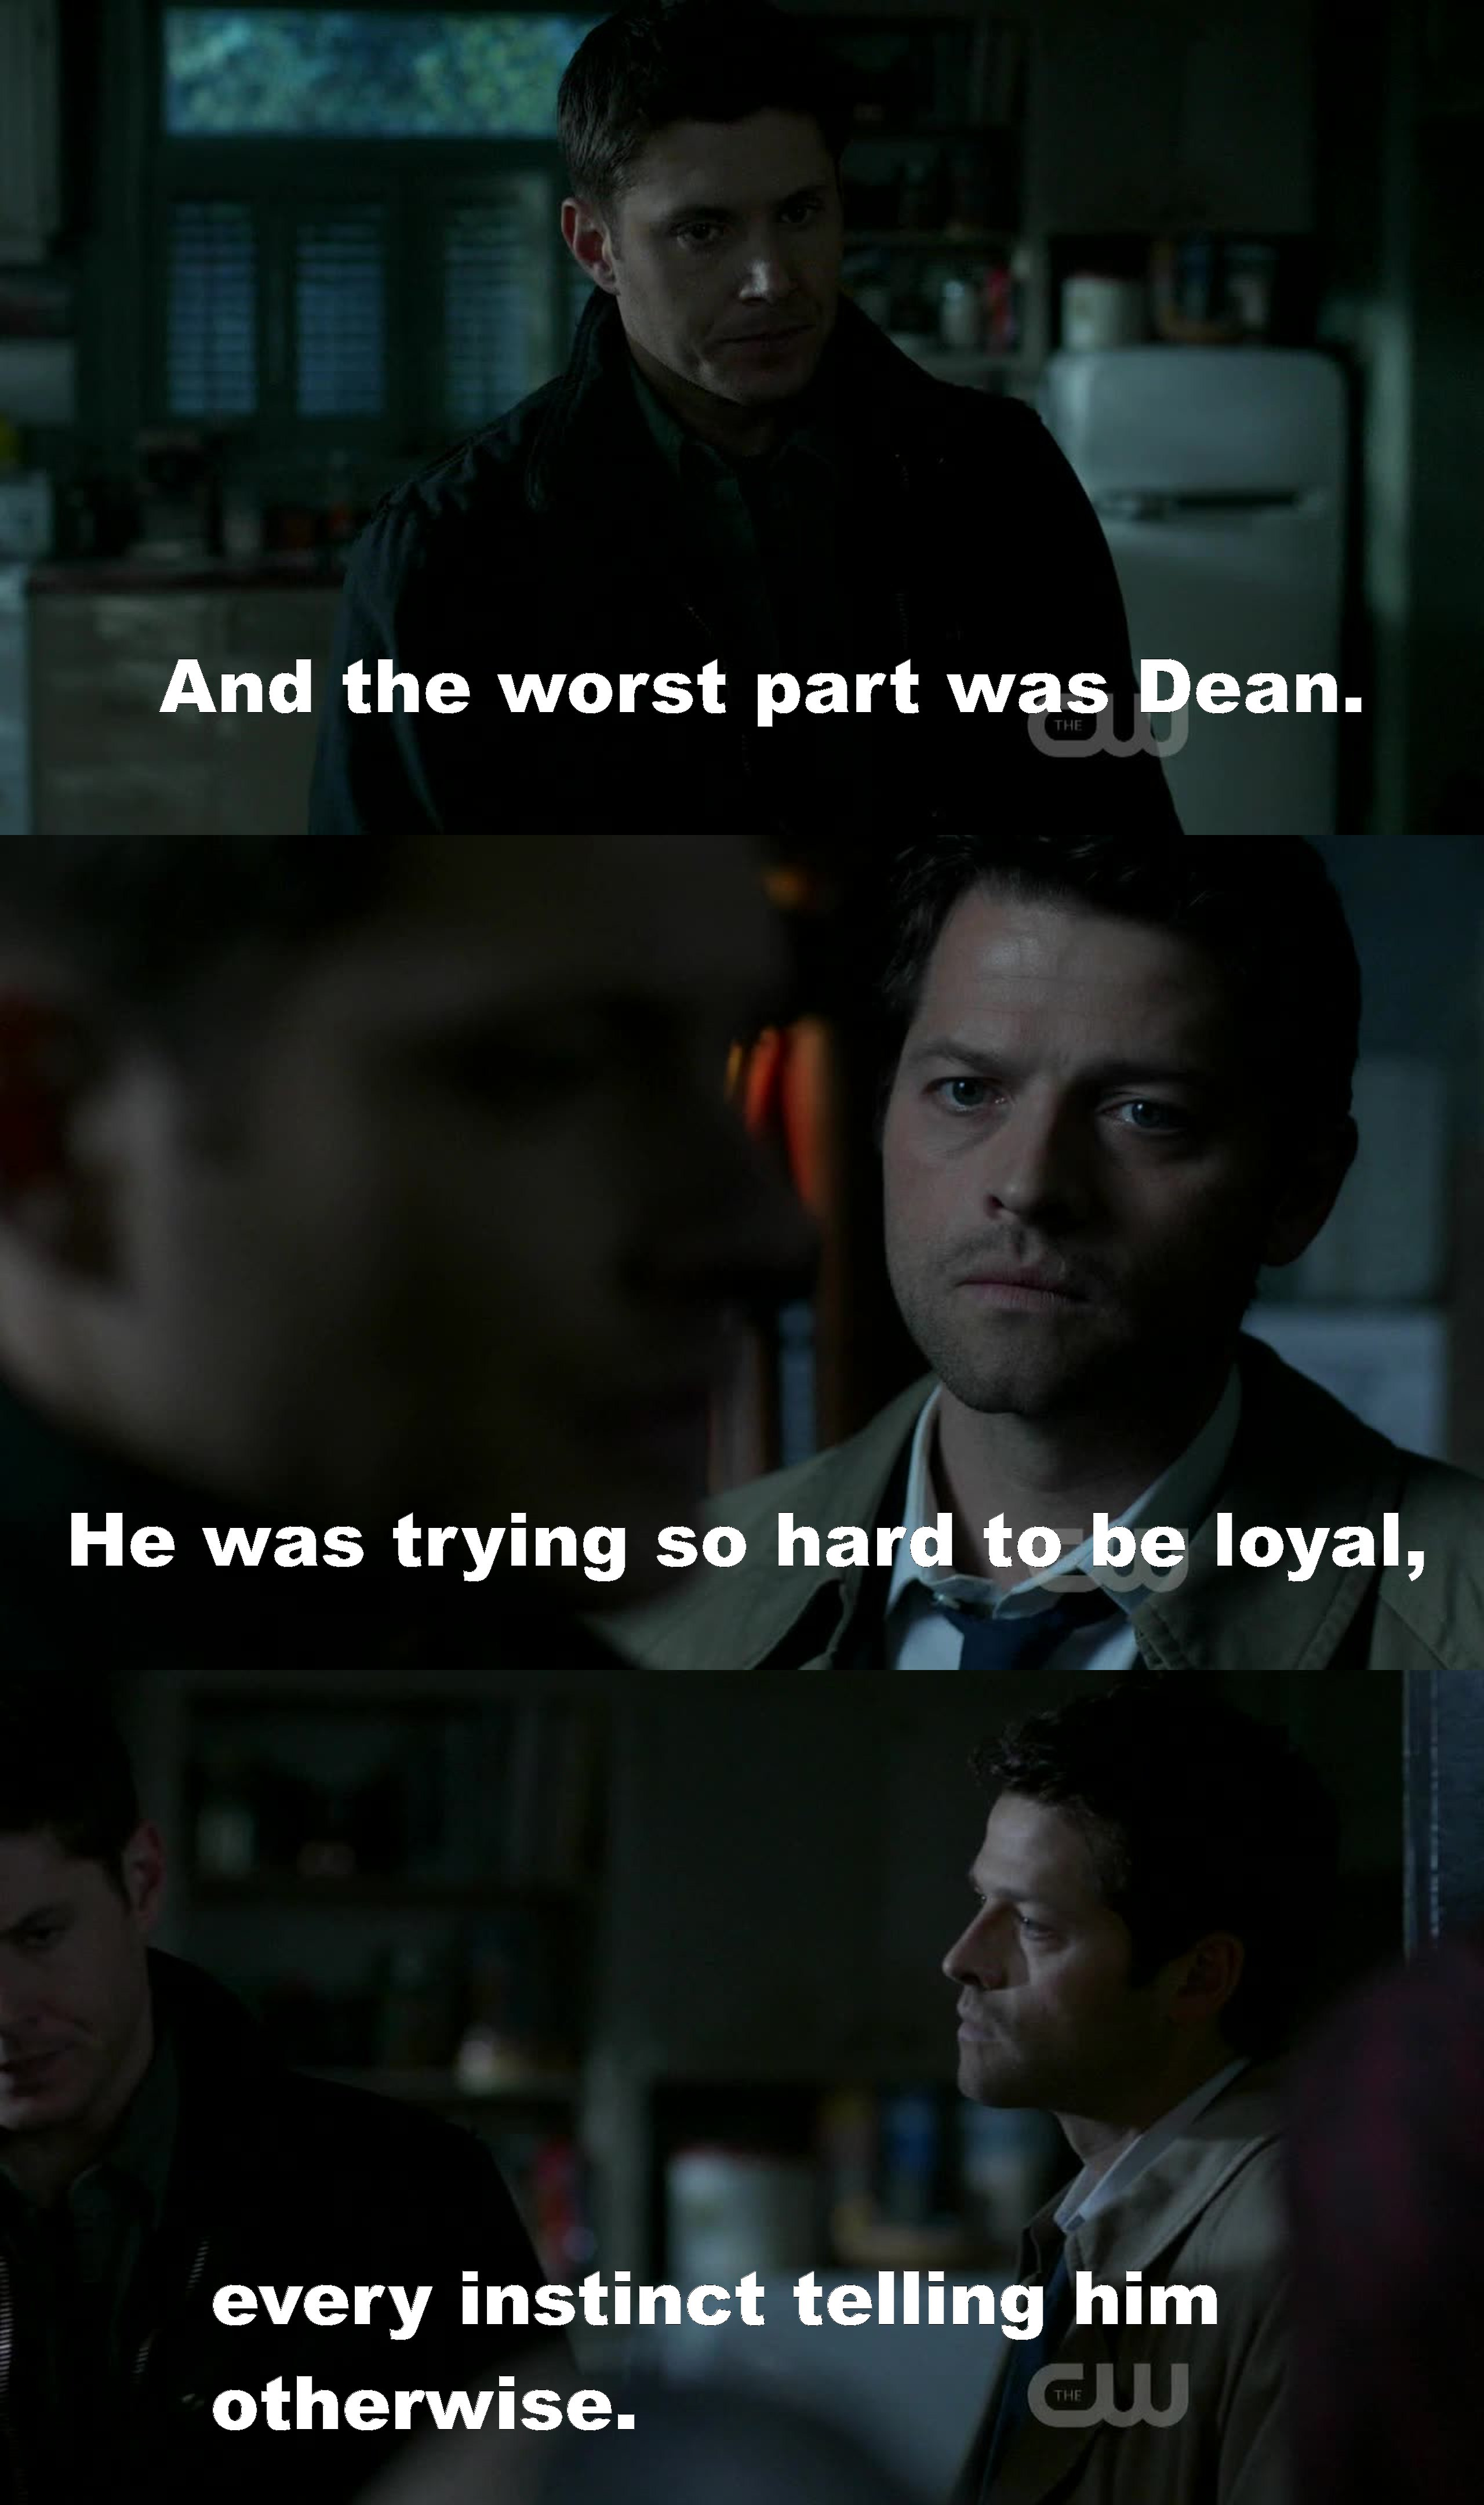 Dean trusting Cas until the end, and his face when he realized that Cas was lying to them. It was so sad c_c